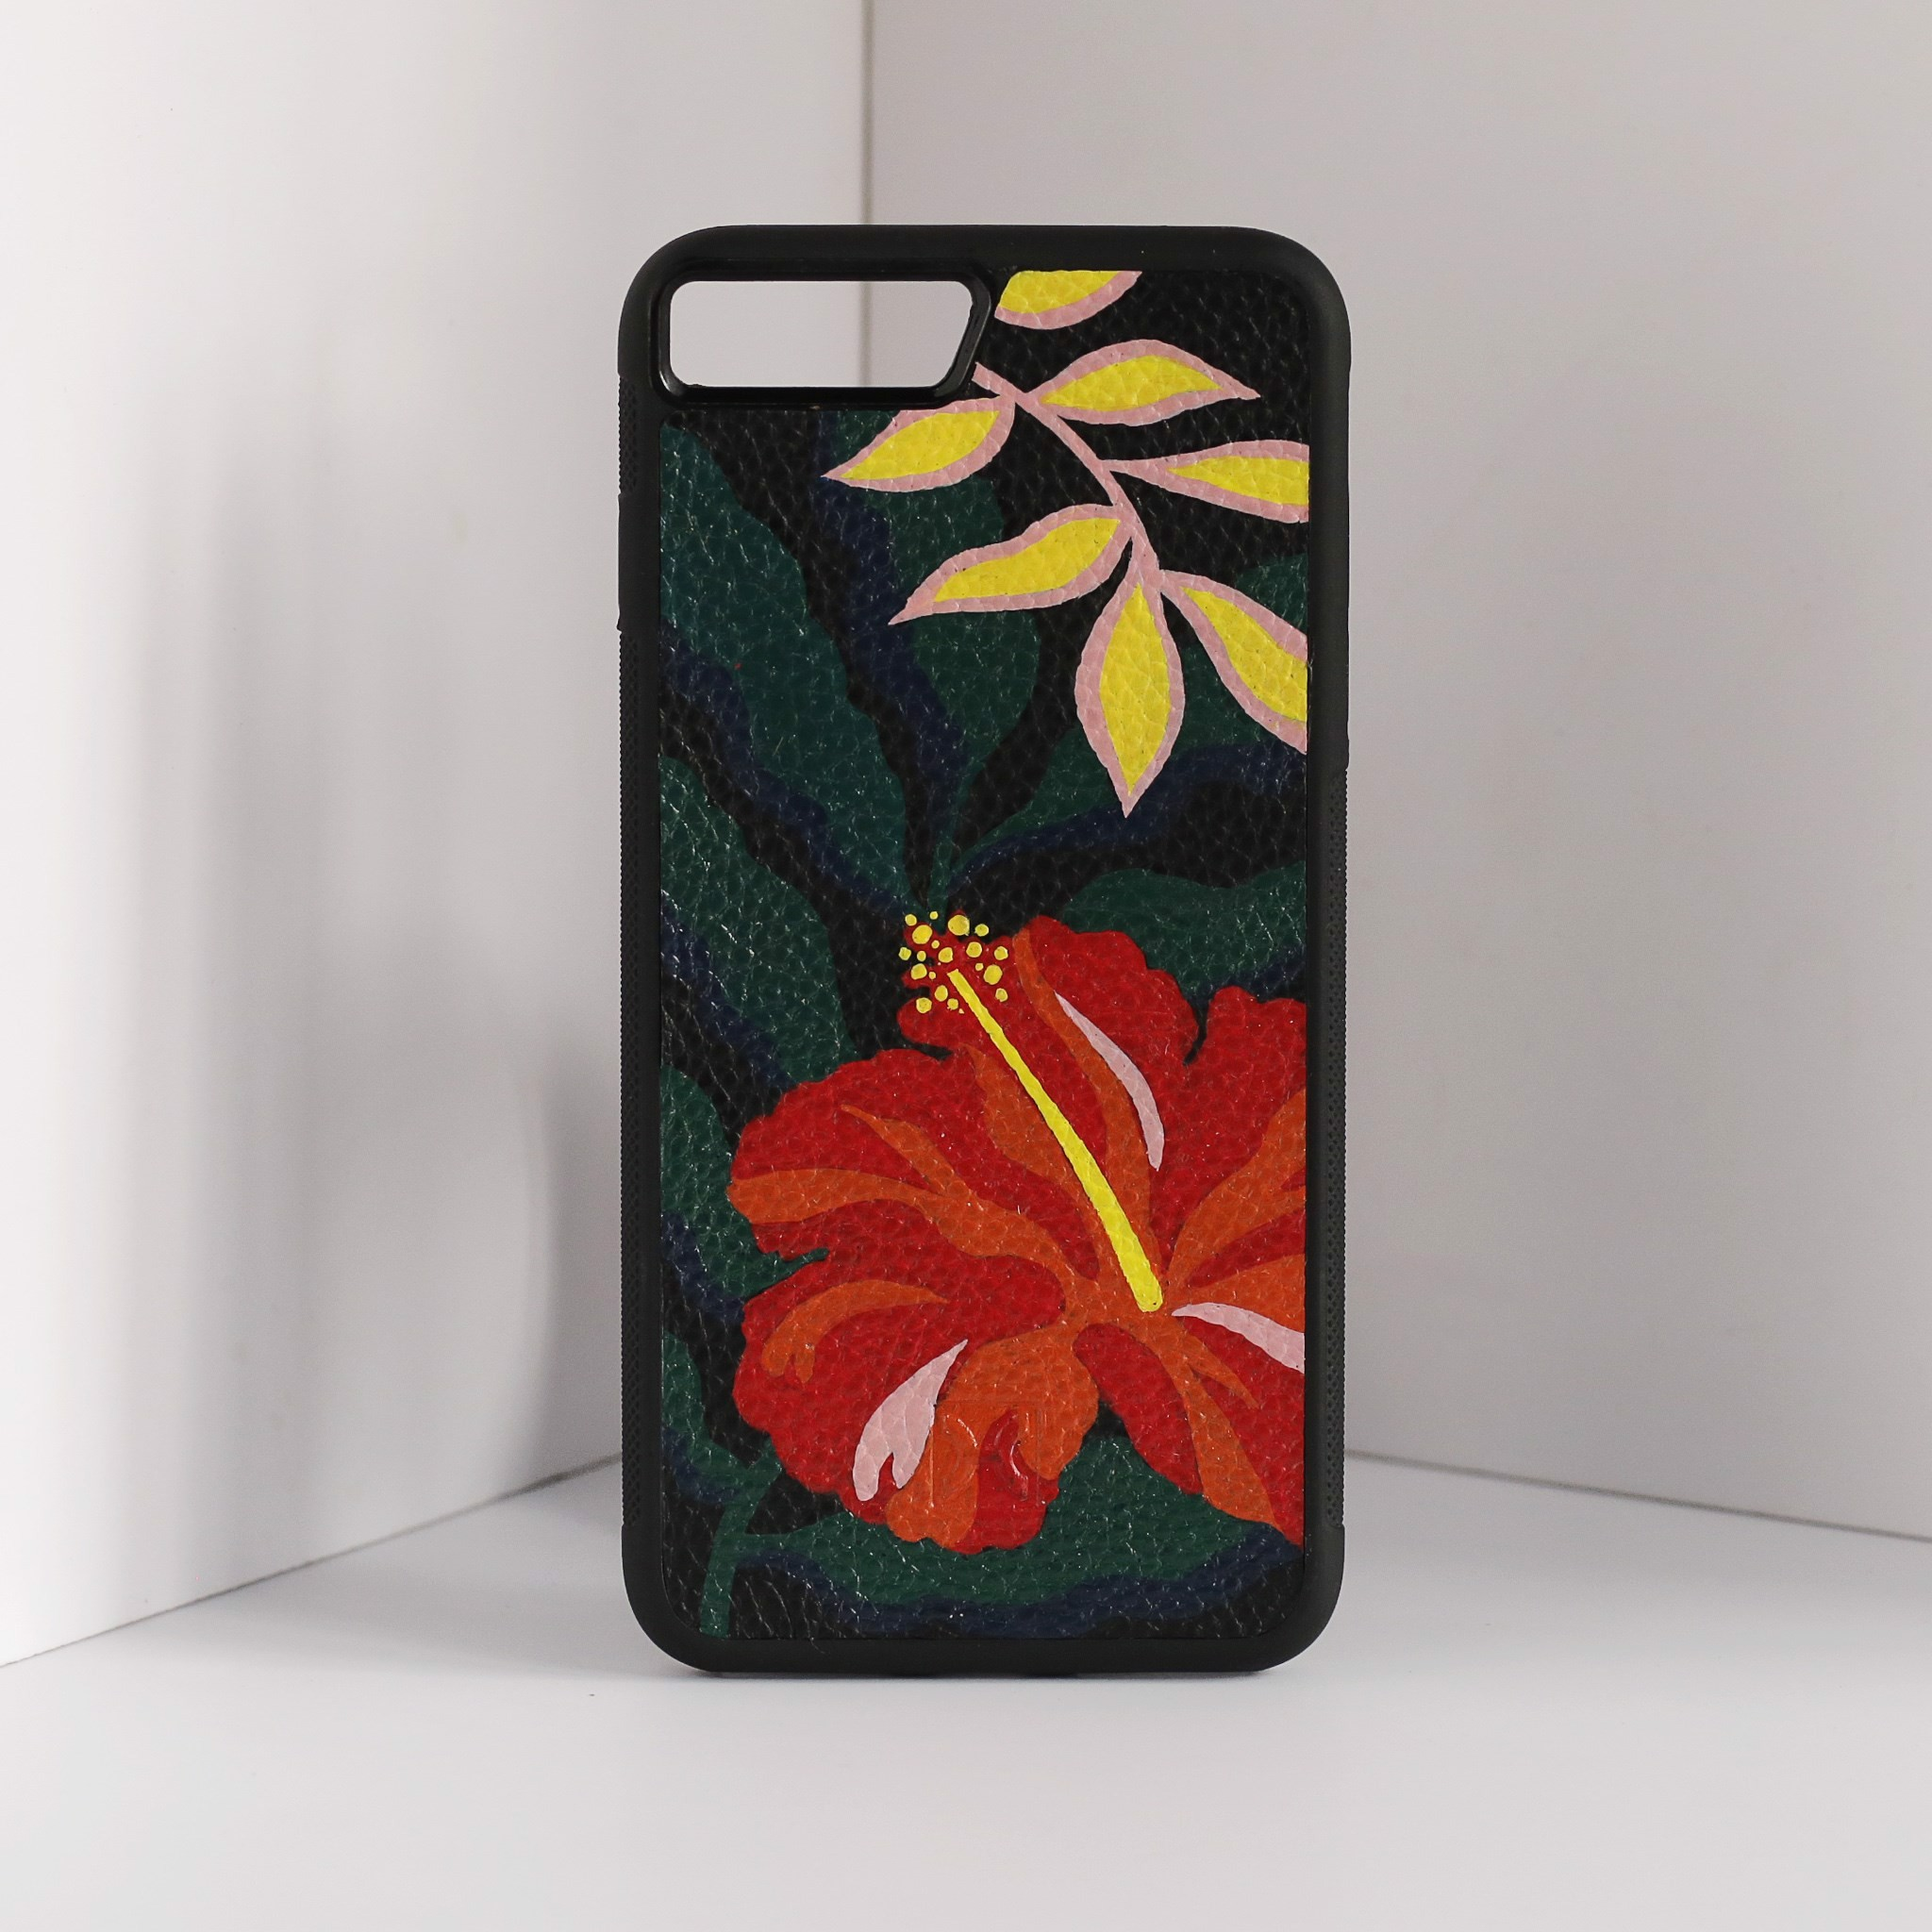 Case iPhone 6/7/8 Plus De33-Tropic 1